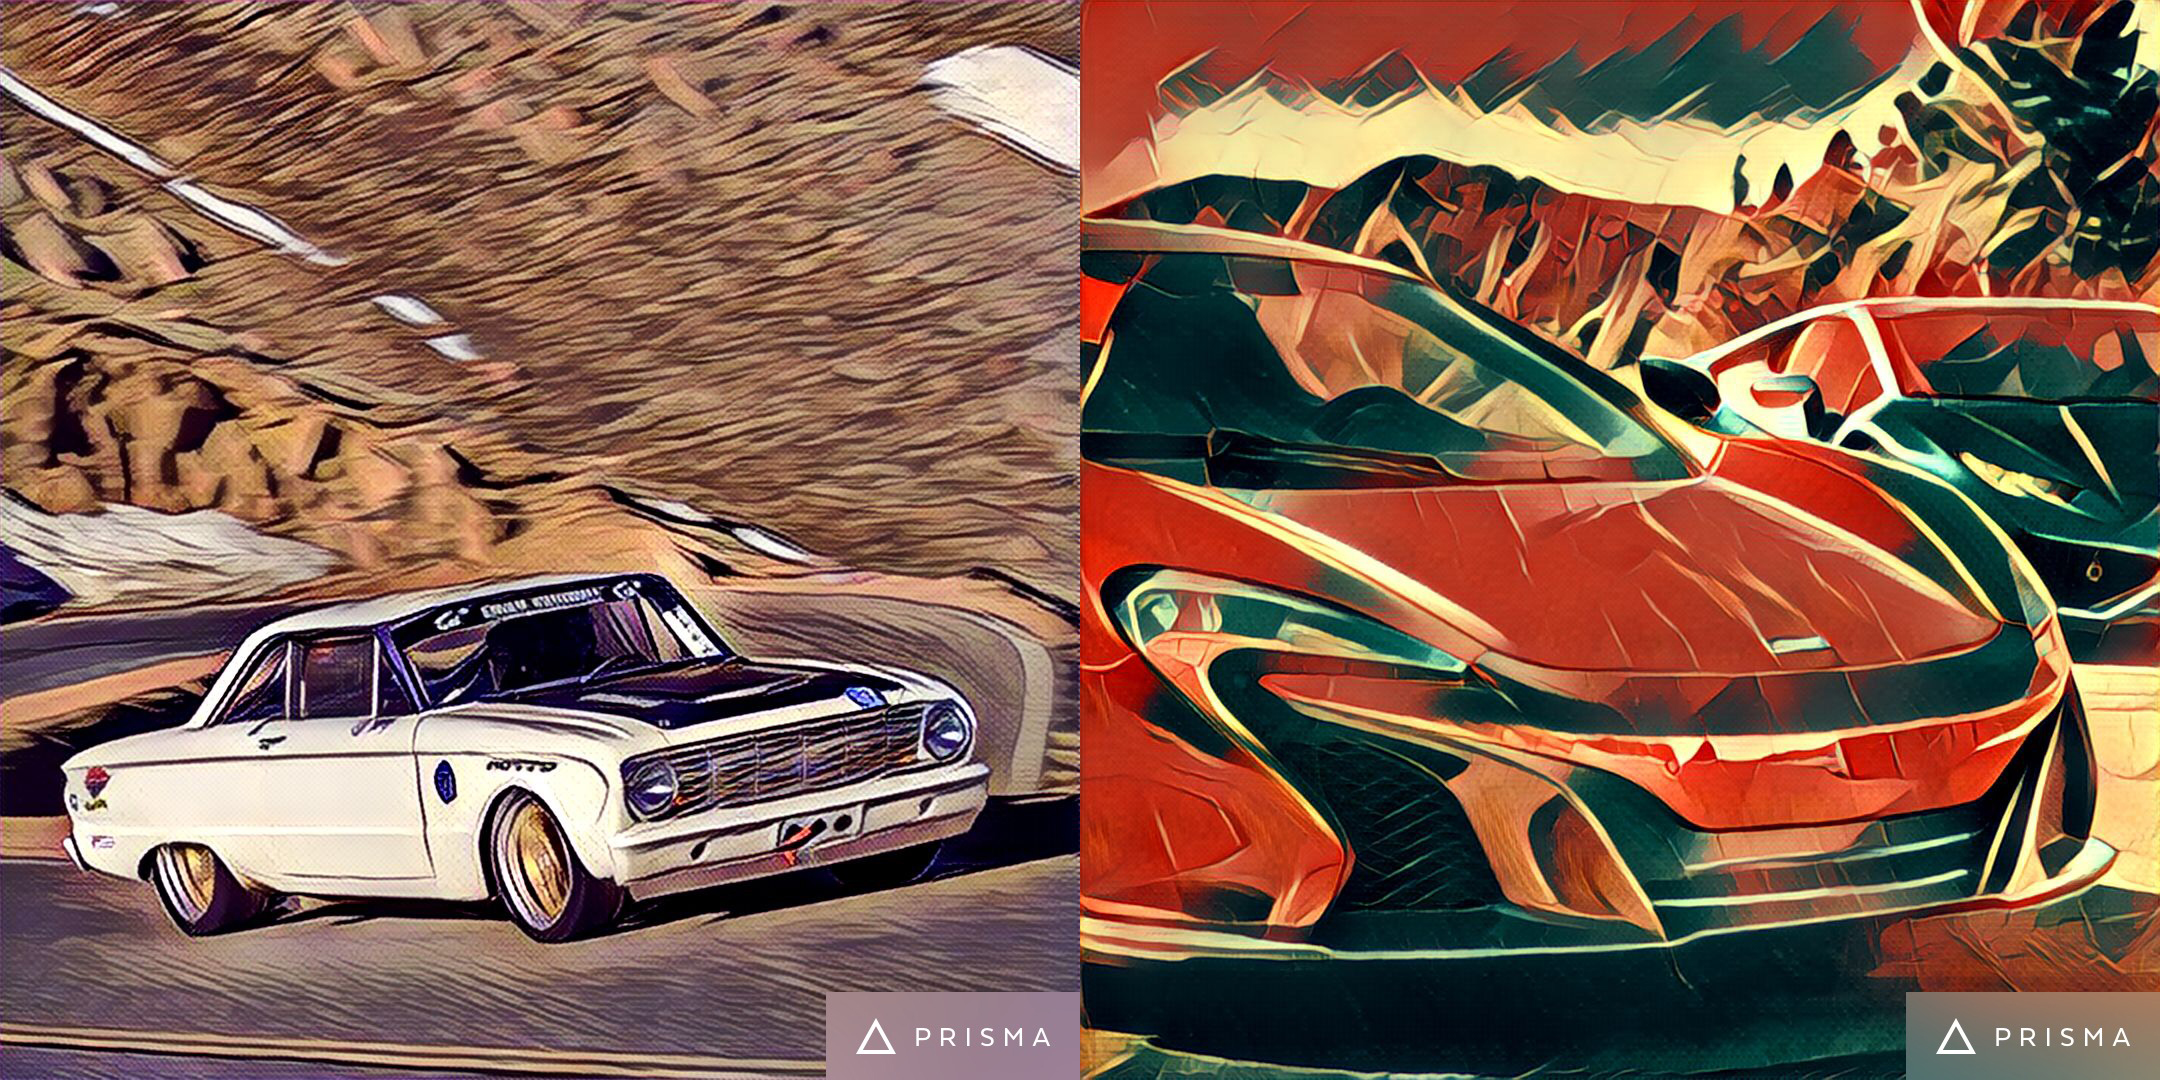 Instaobsession How To Turn Your Car Pics Into Works Of Art With The Prisma App Drivingline